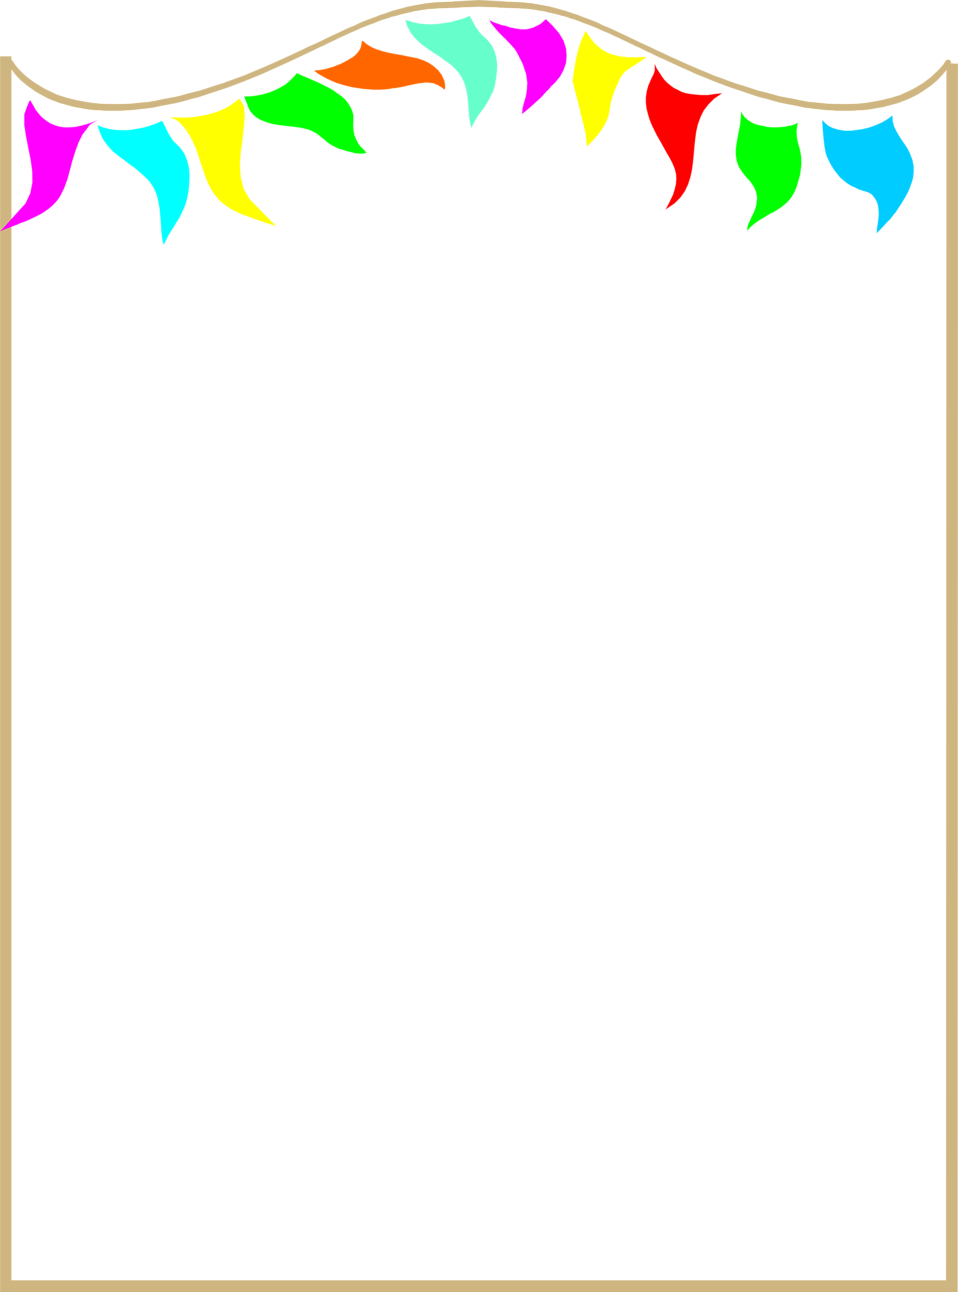 Colorful frames and borders png. Illustration of a blank